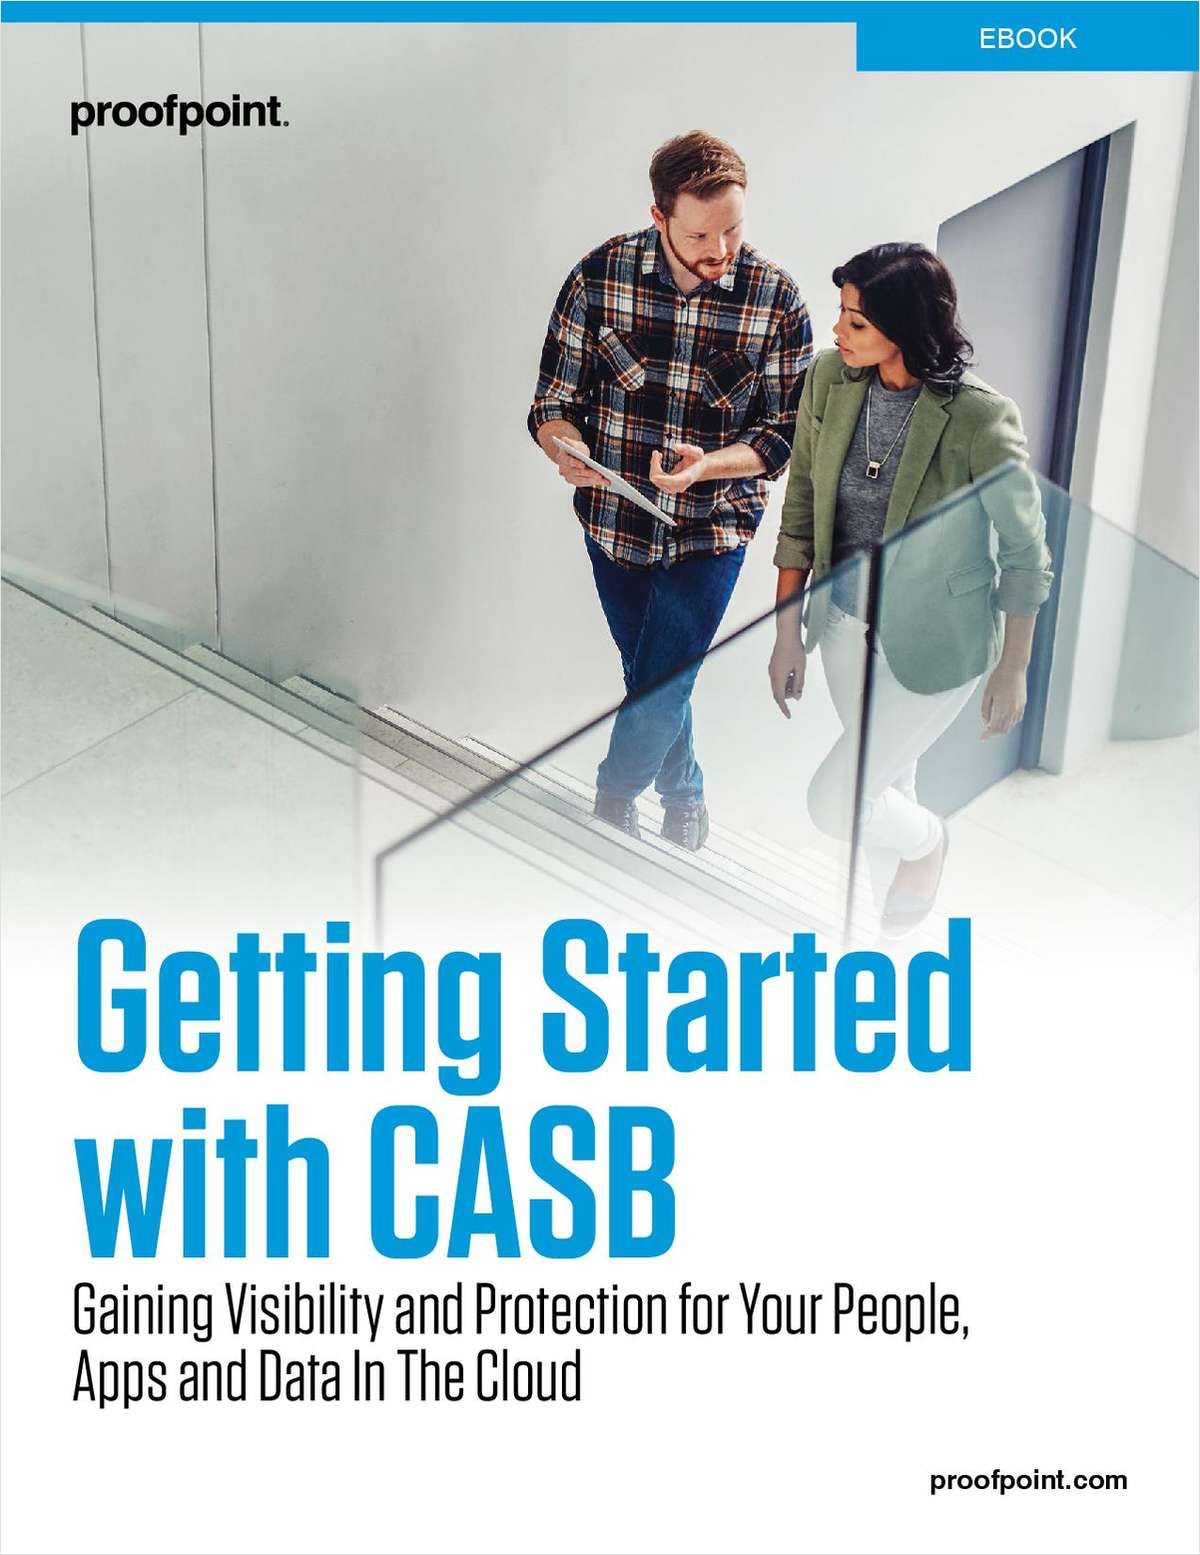 Getting Started with CASB - Gaining Visibility and Protection for Your People Apps and Data in the Cloud